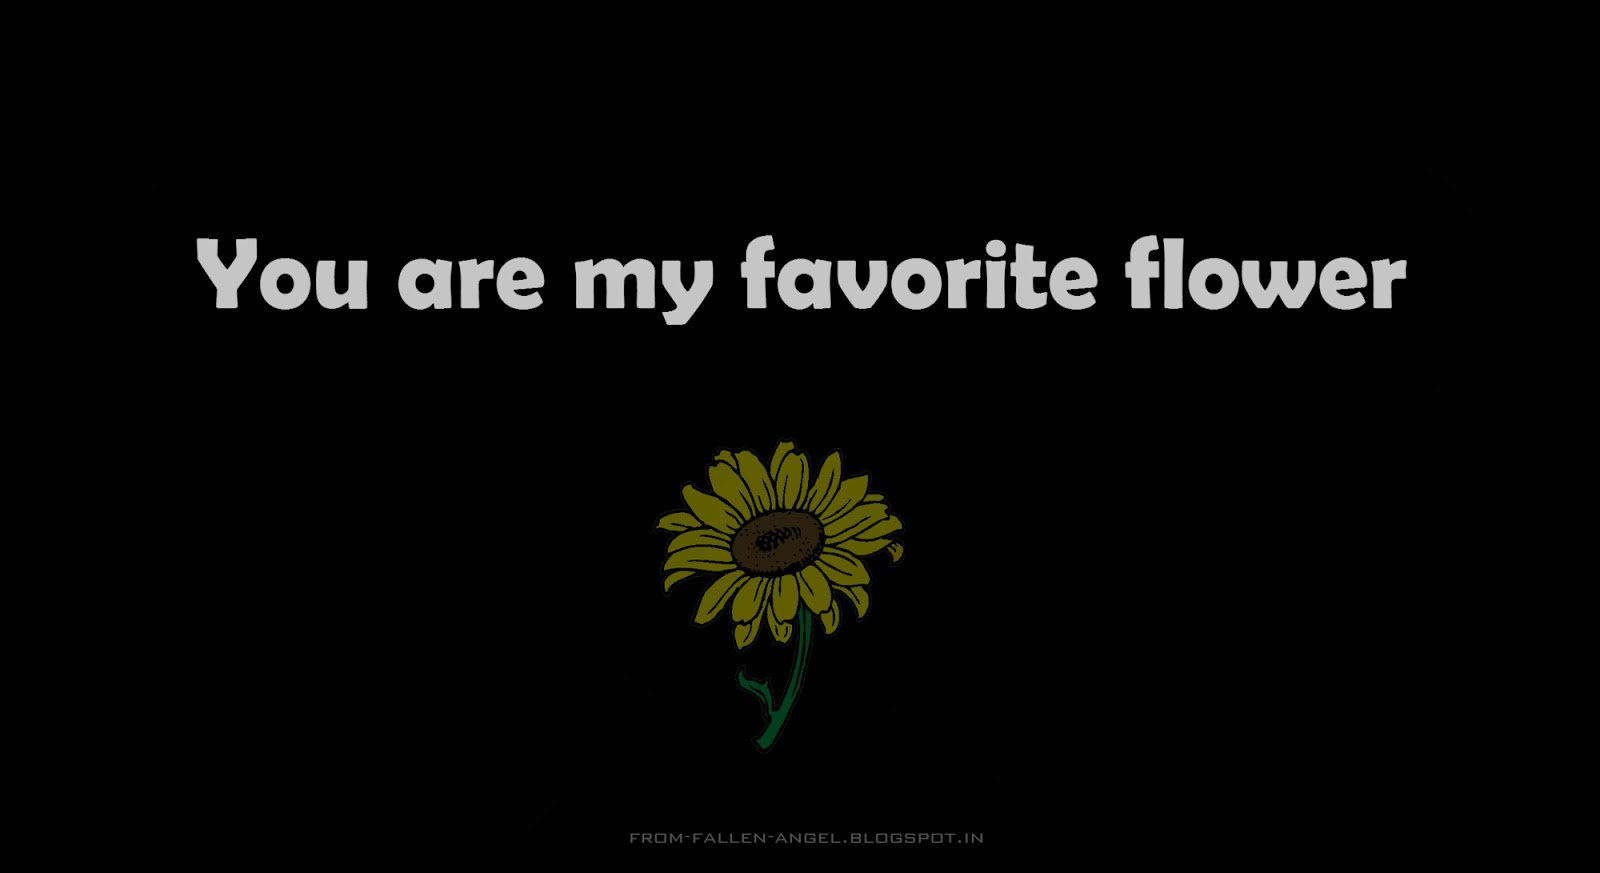 You are my favorite flower